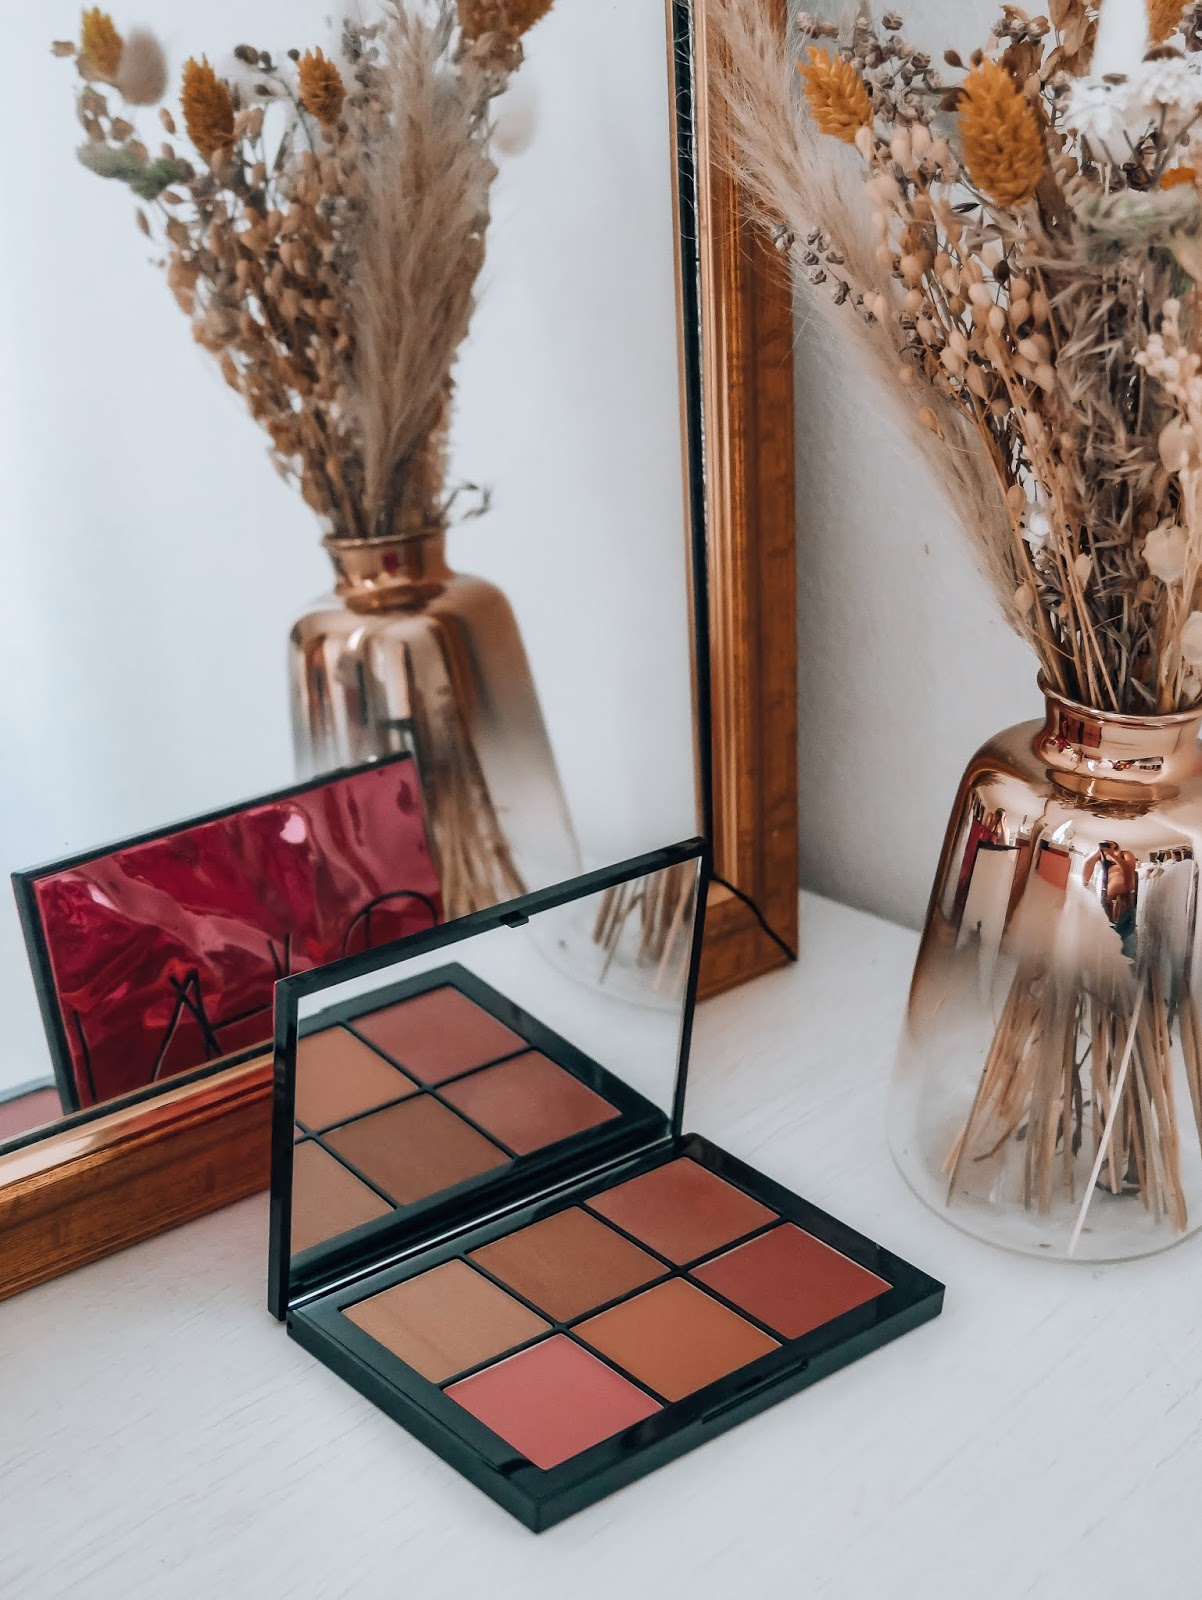 Nars - Revue palette Overlust collection Afterglow